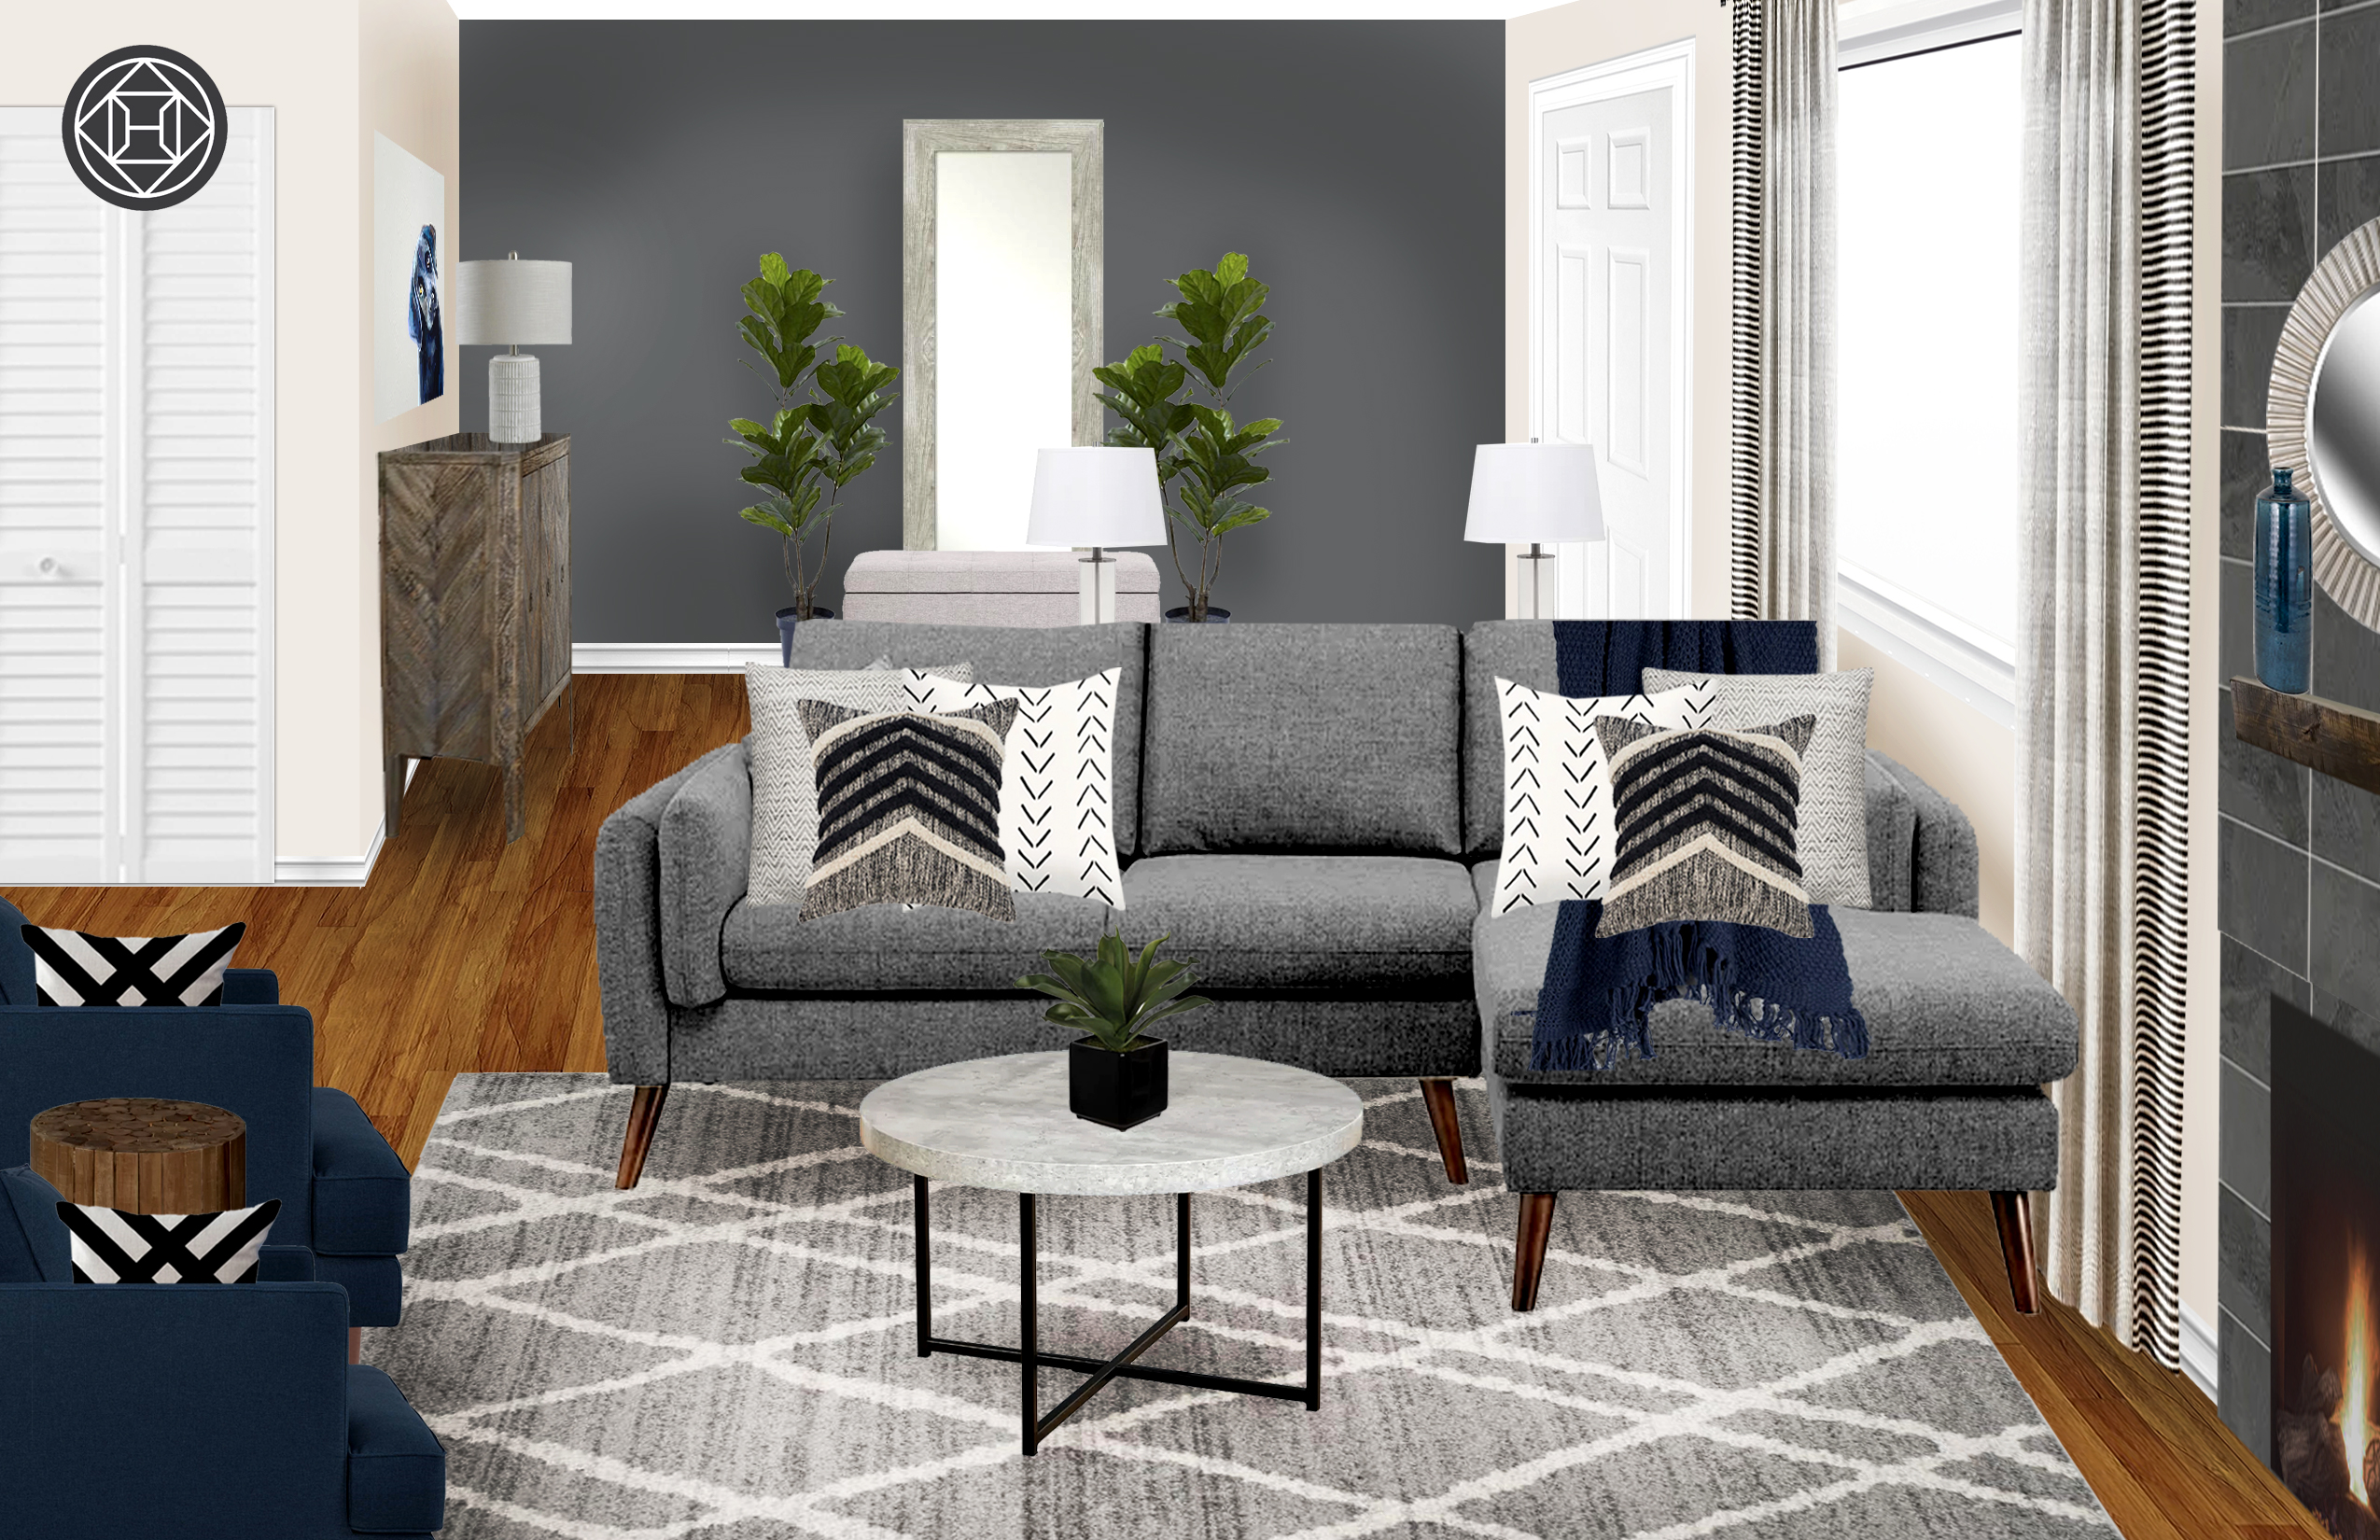 Transitional, Midcentury Modern Living Room Design by ...